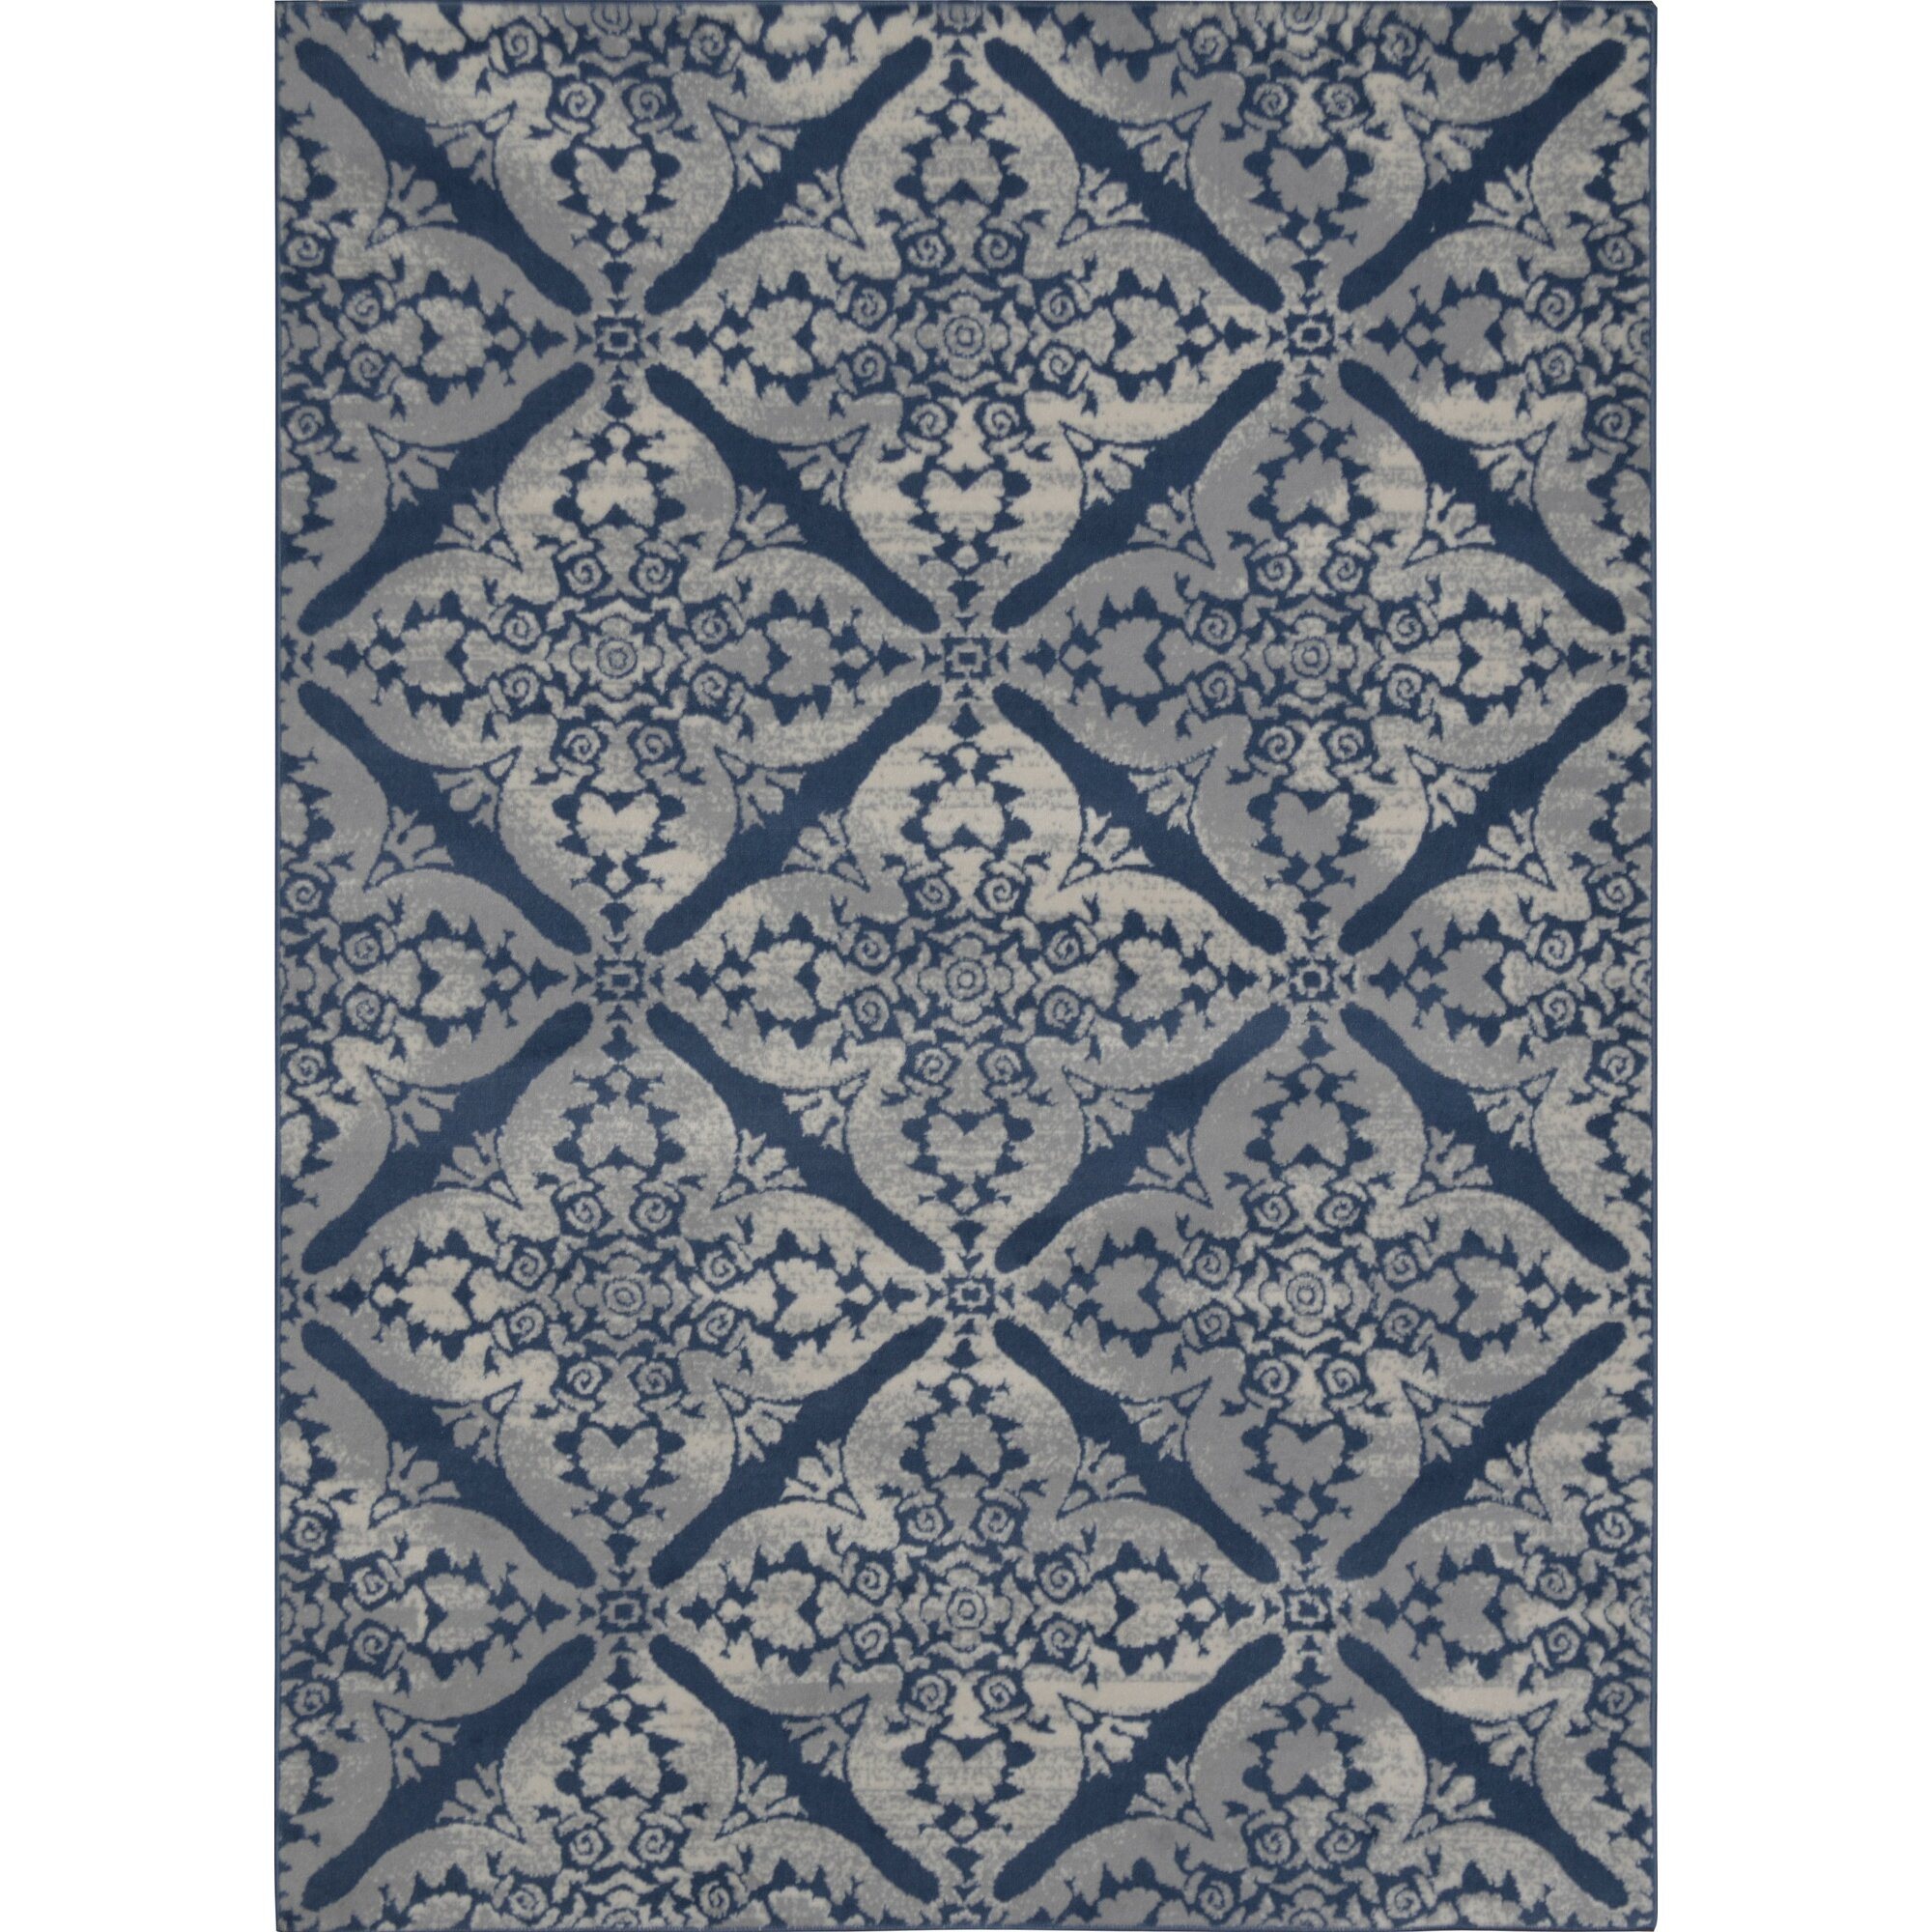 Andover mills blue grey area rug reviews for Blue and white carpet